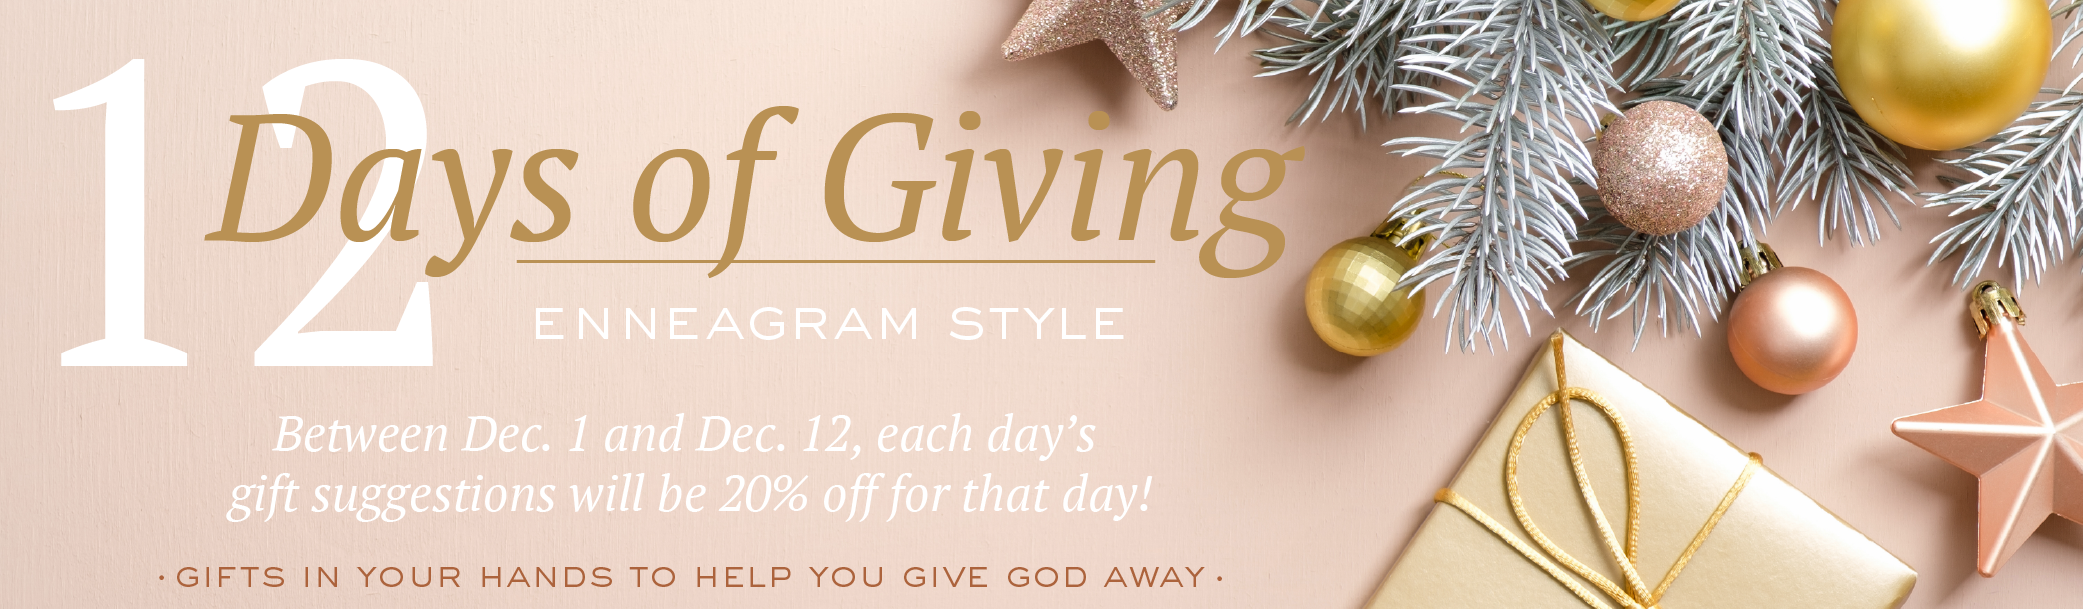 12 Days of Giving Enneagram gift guide